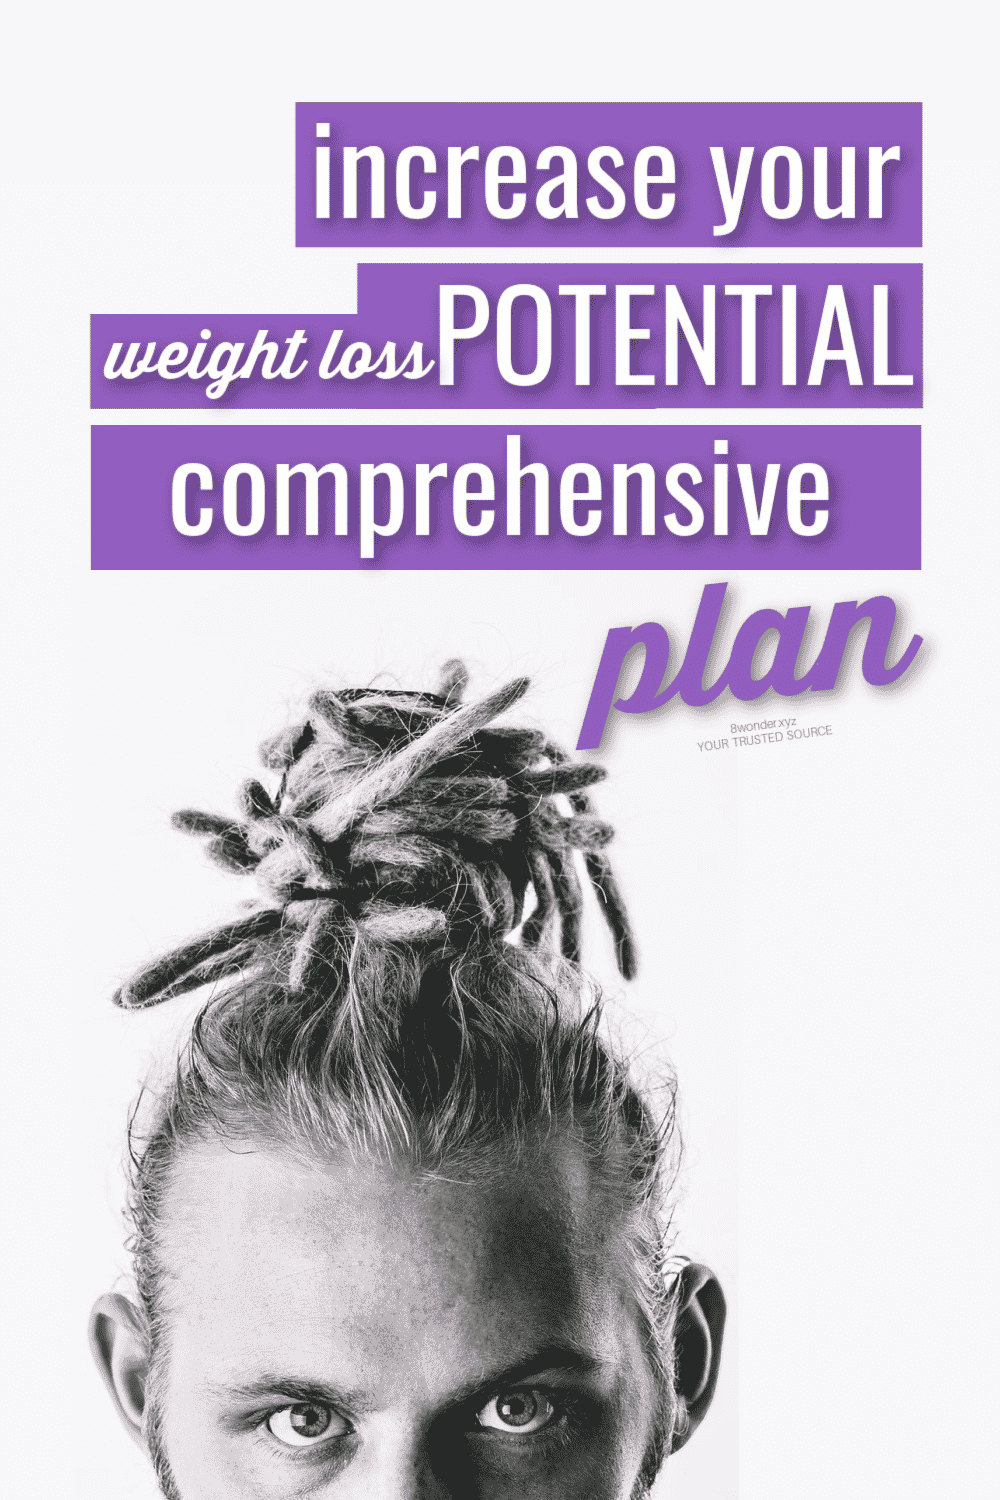 Increase Your Weight Loss Potential with plan